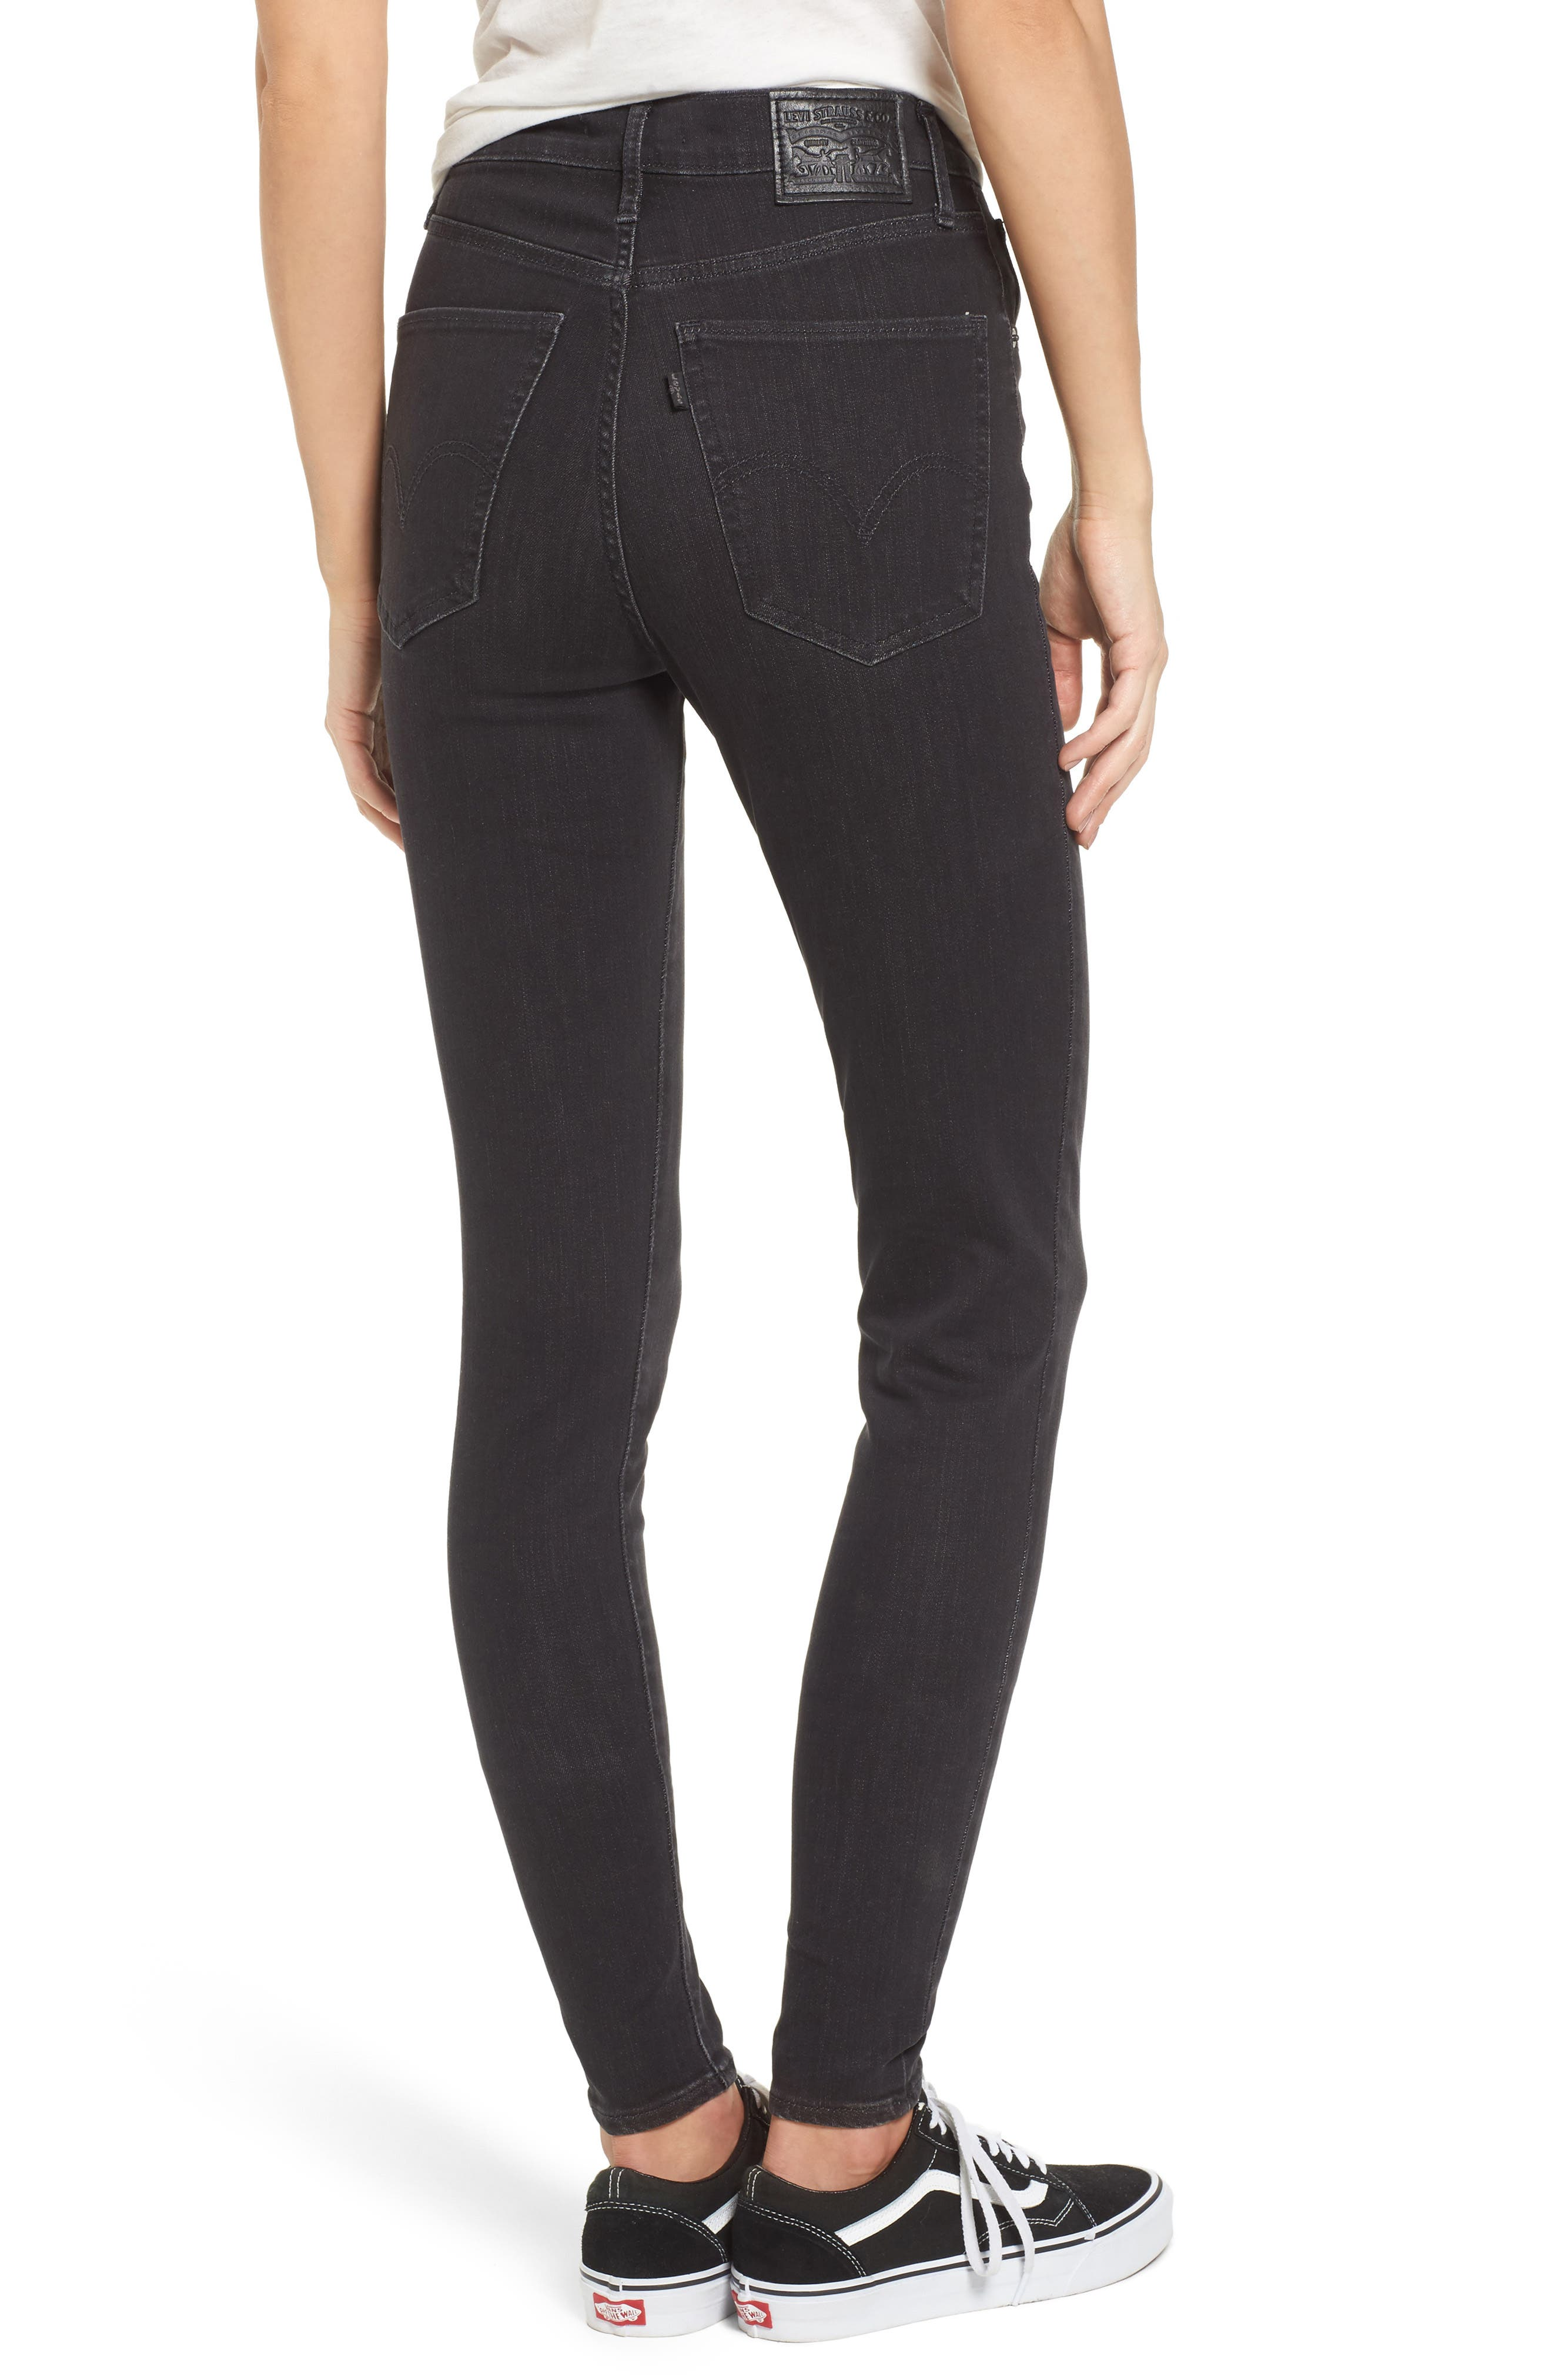 Mile High High Rise Skinny Jeans,                             Alternate thumbnail 2, color,                             001